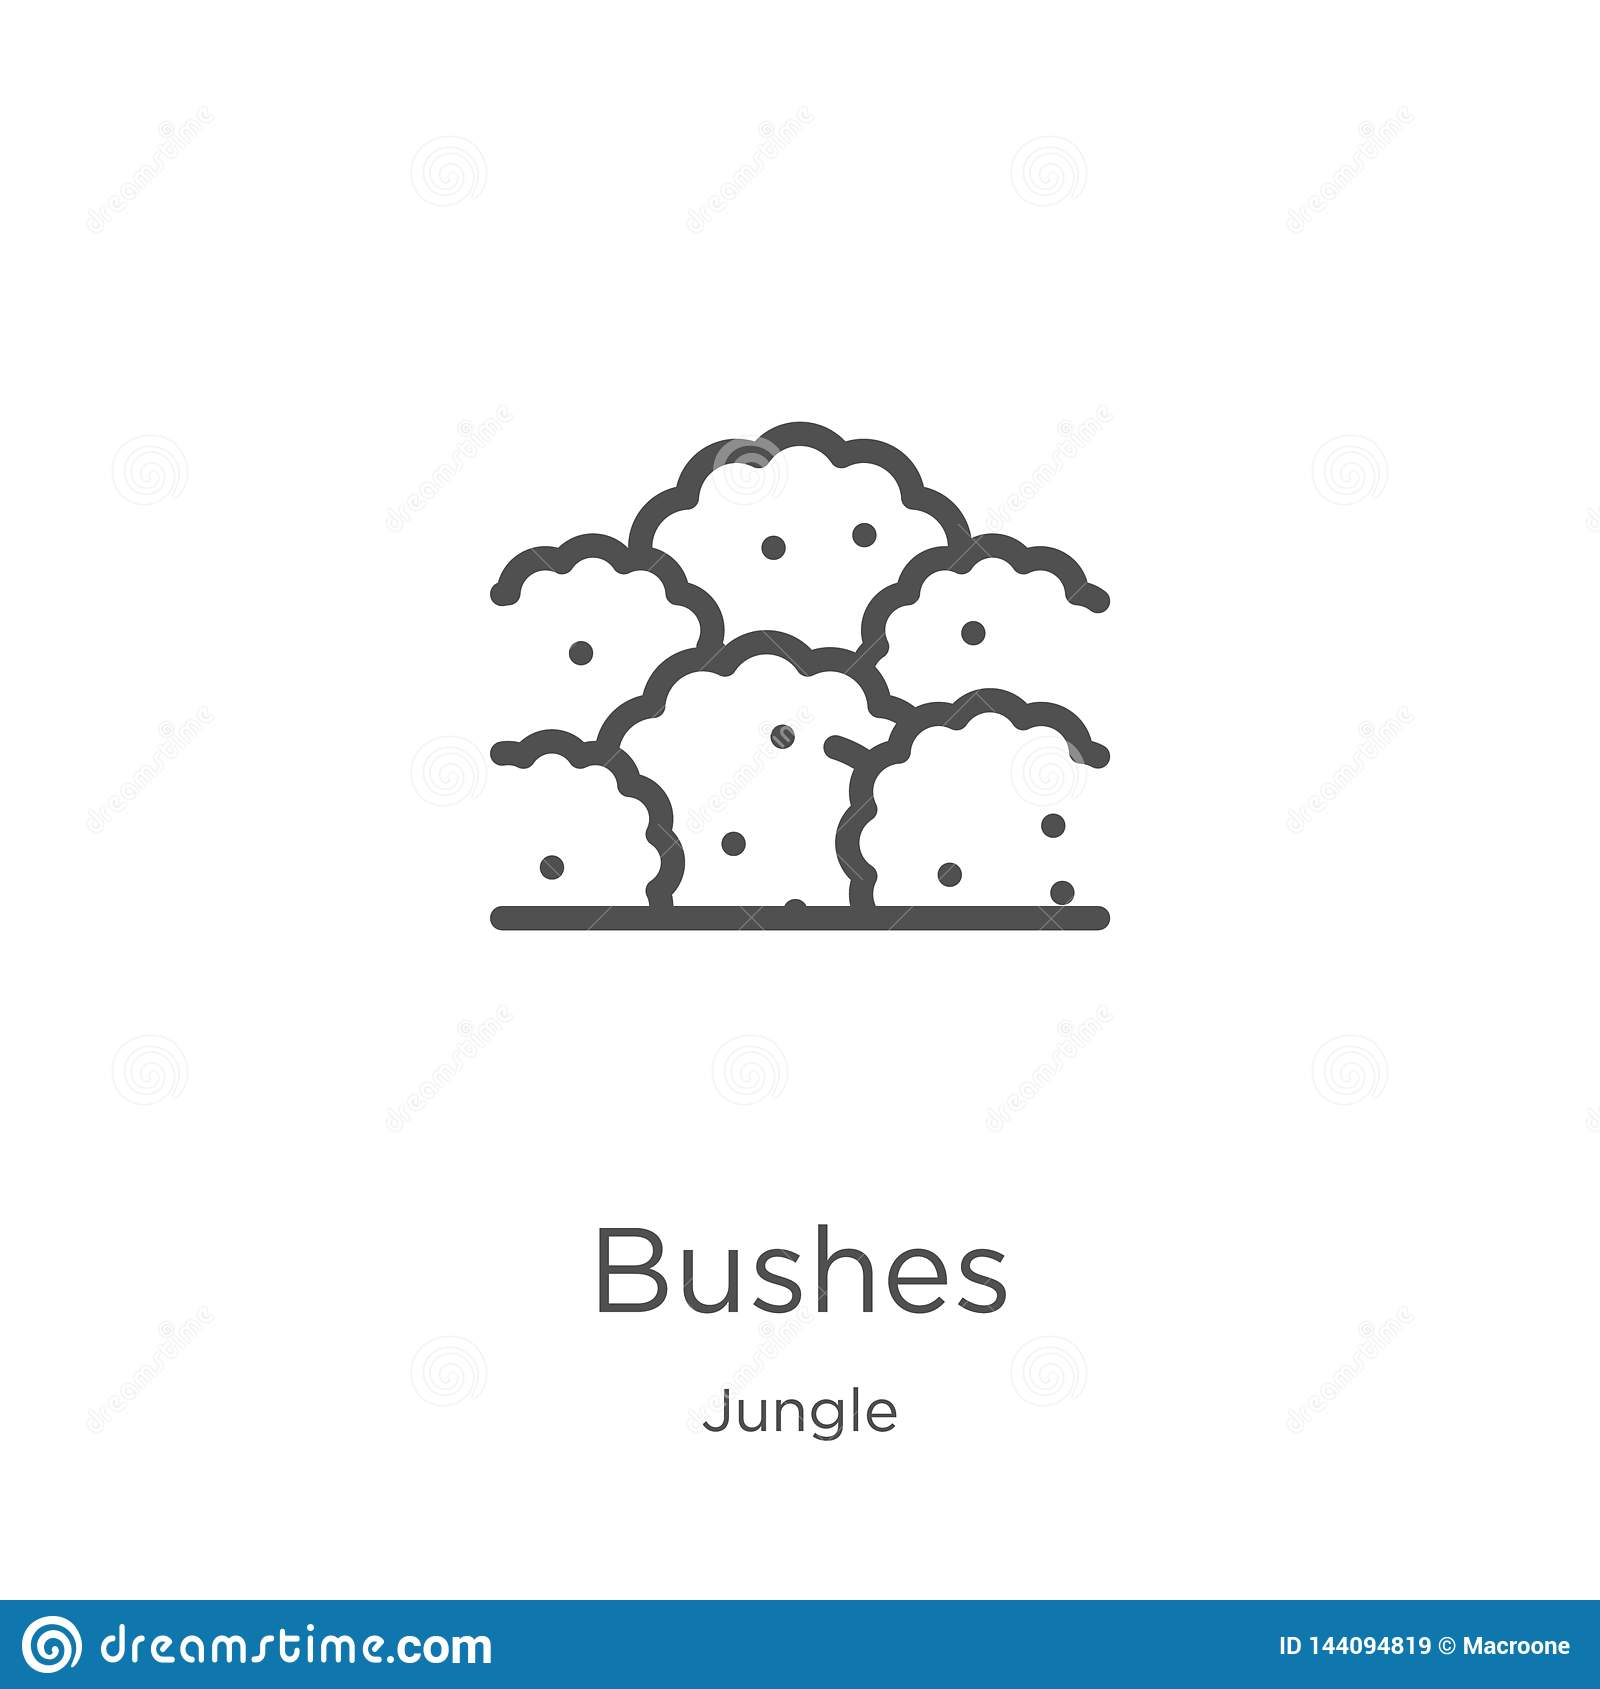 bushes icon vector from jungle collection. Thin line bushes outline icon vector illustration. Outline, thin line bushes icon for